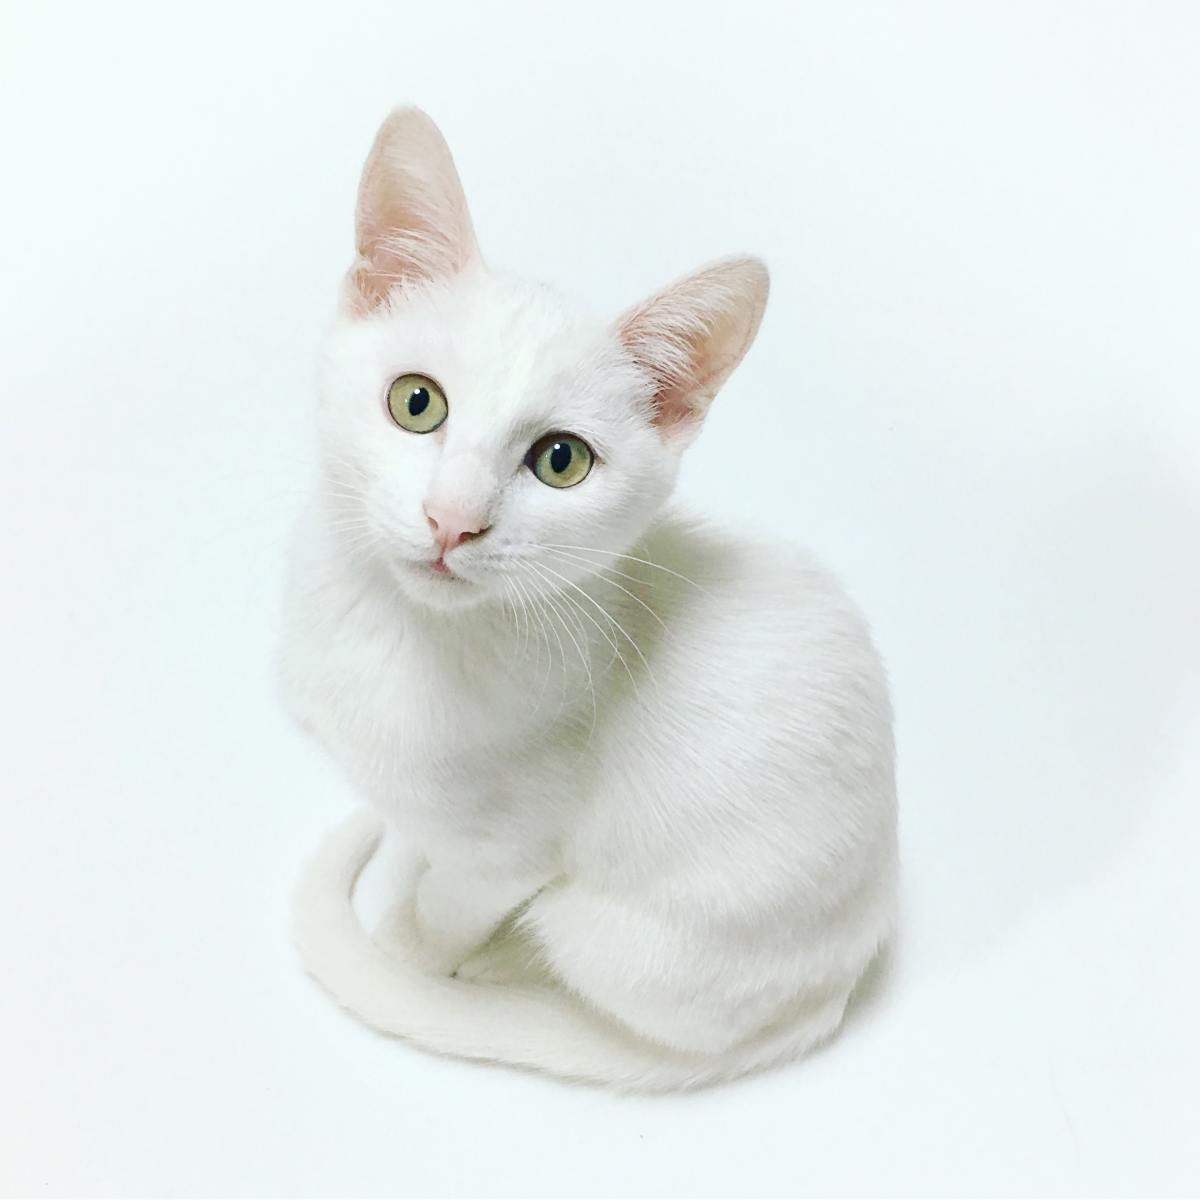 White rescue cats bring good luck, so do black cats in some cultures.